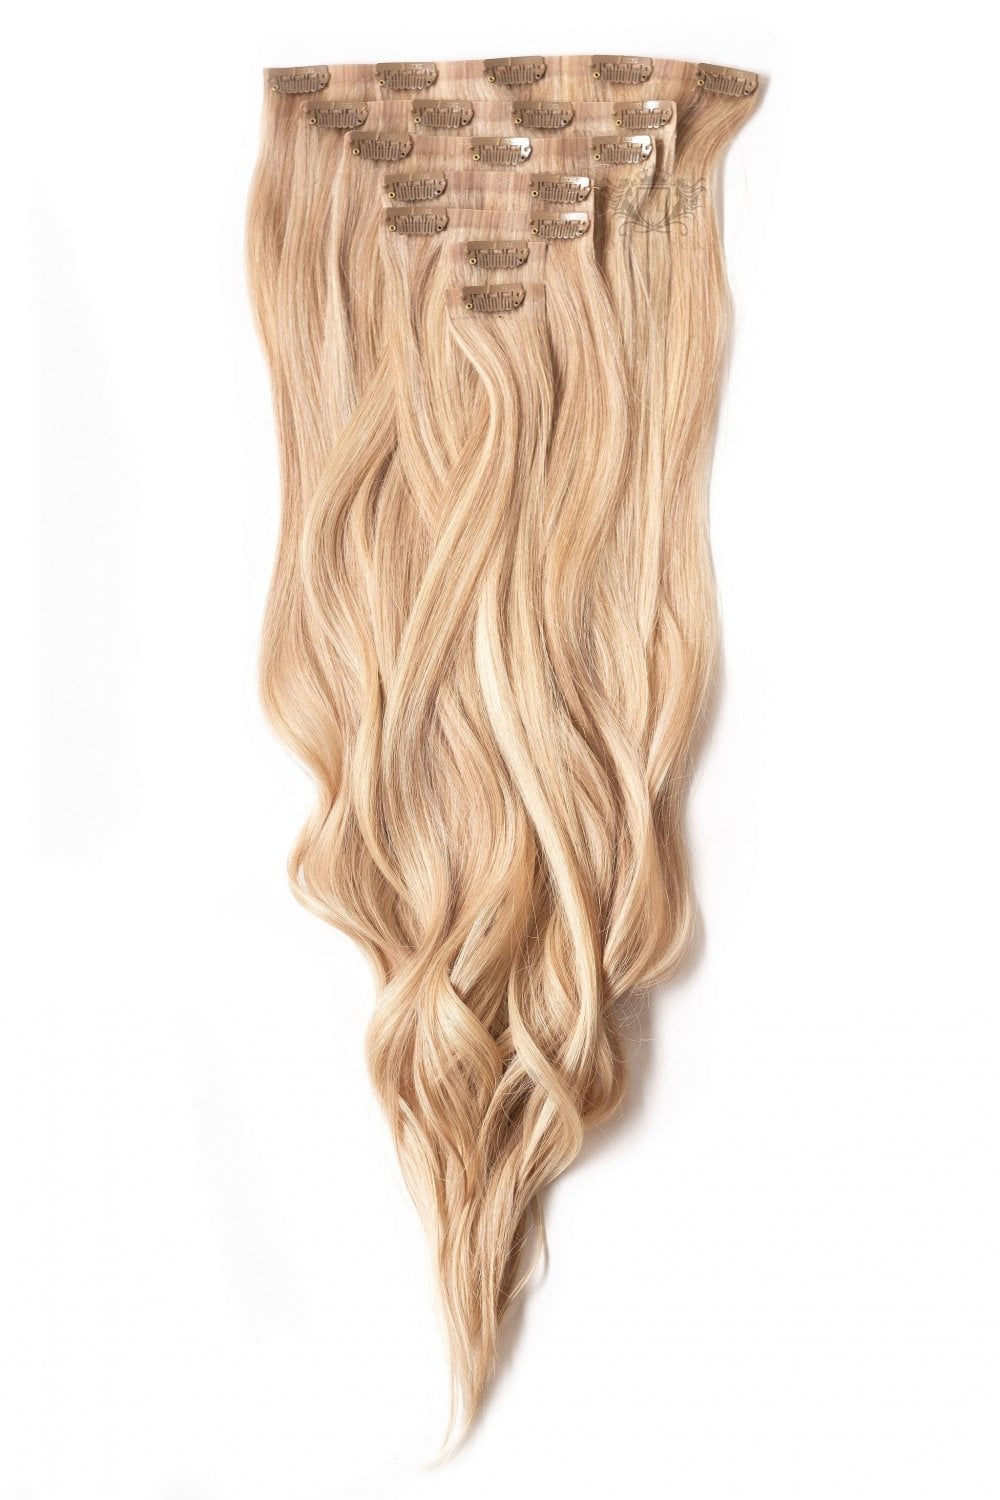 Seamless clip in hair extensions sandy blonde deluxe 20 seamless clip in human hair extensions 165g pmusecretfo Images